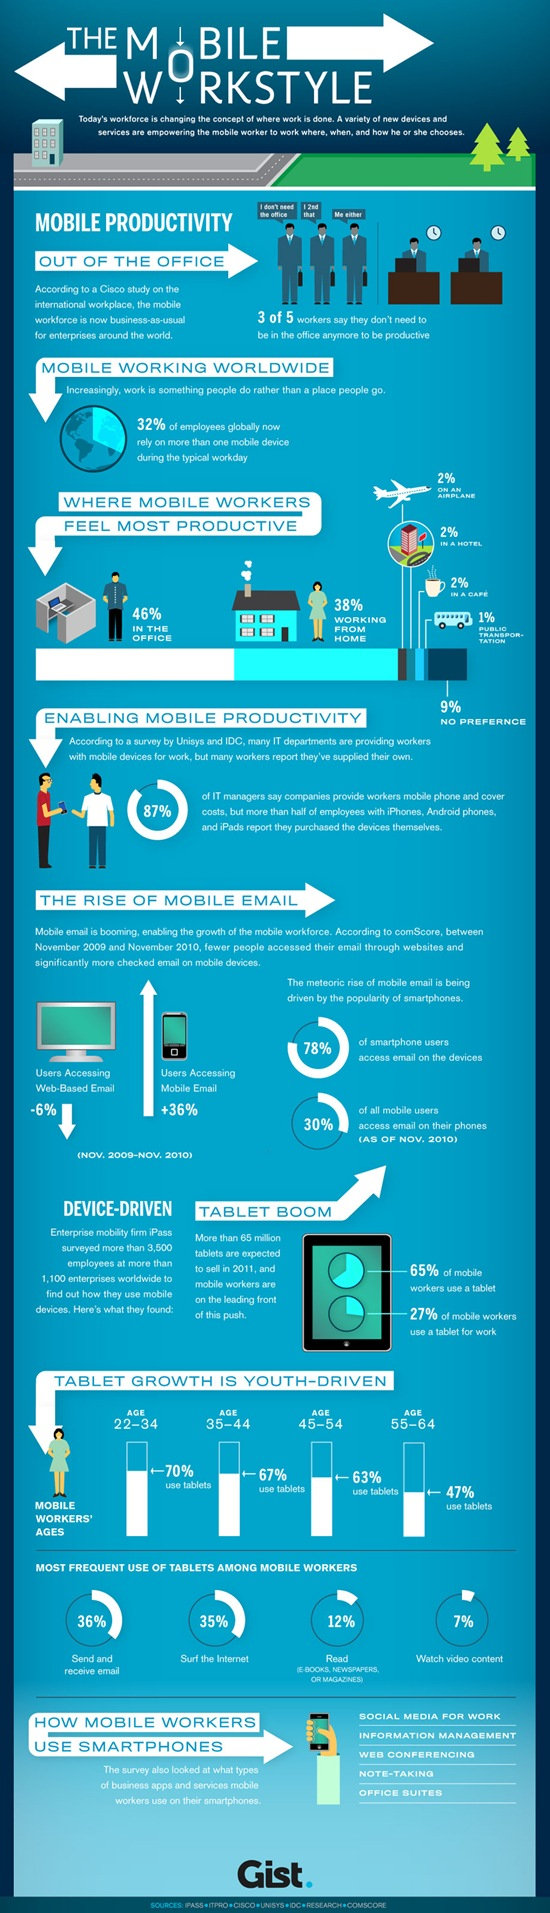 Gist-MobileWorkstyle_Infographic-C5